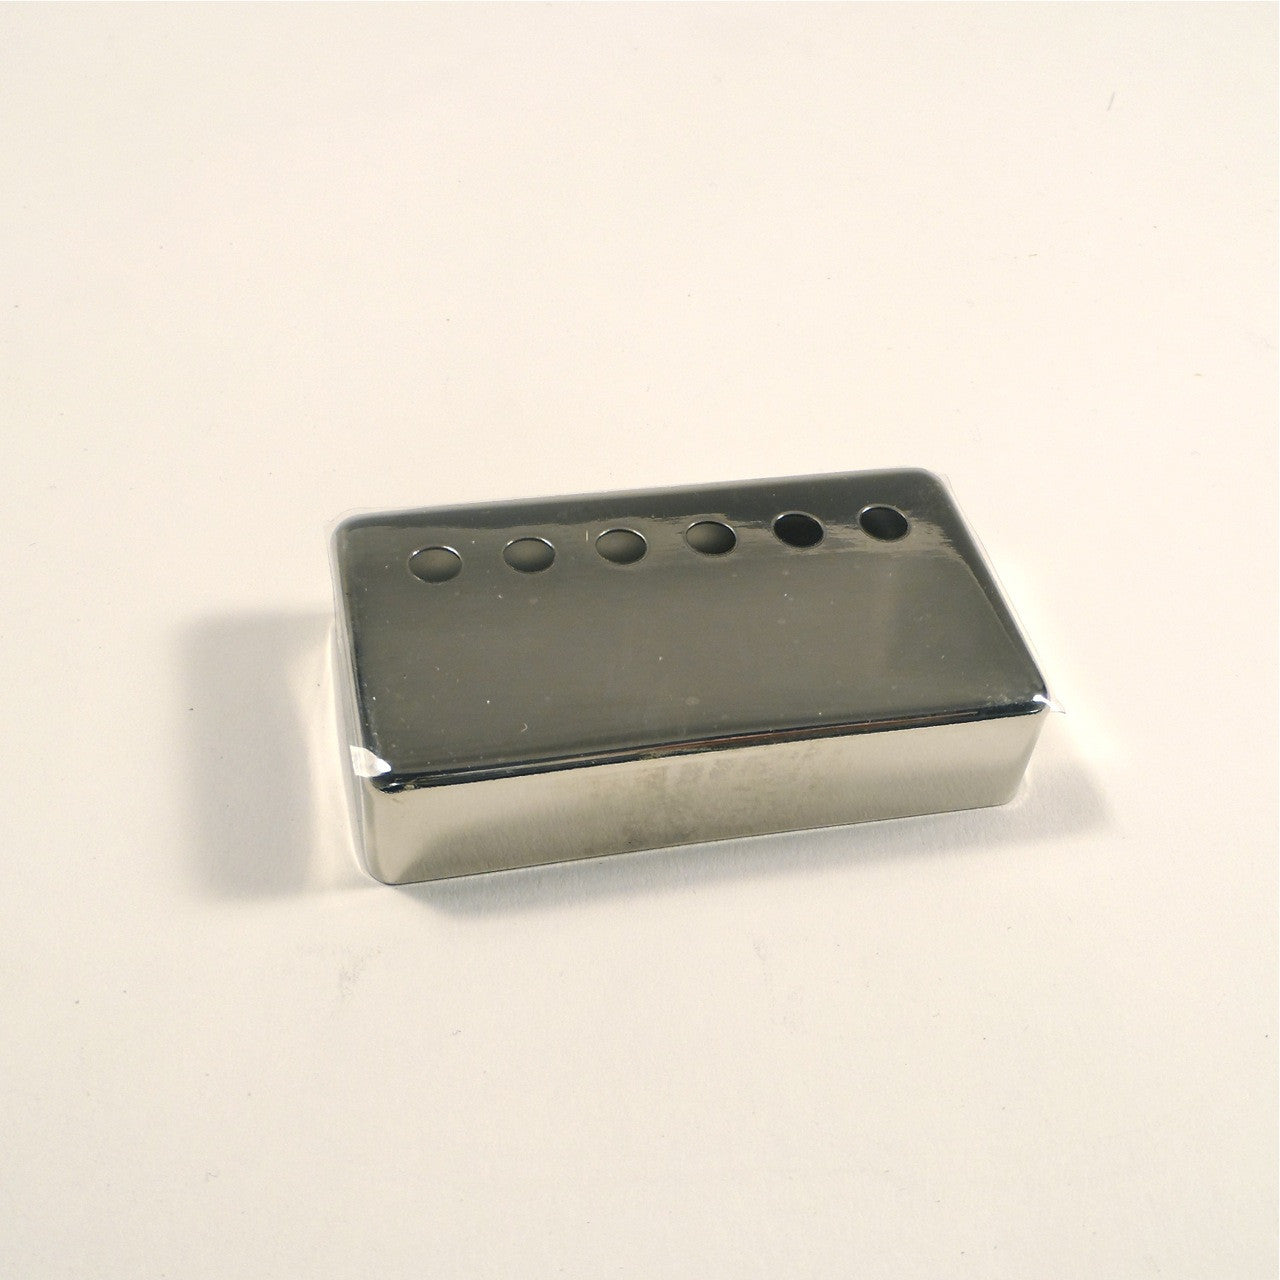 Humbucker pickup cover